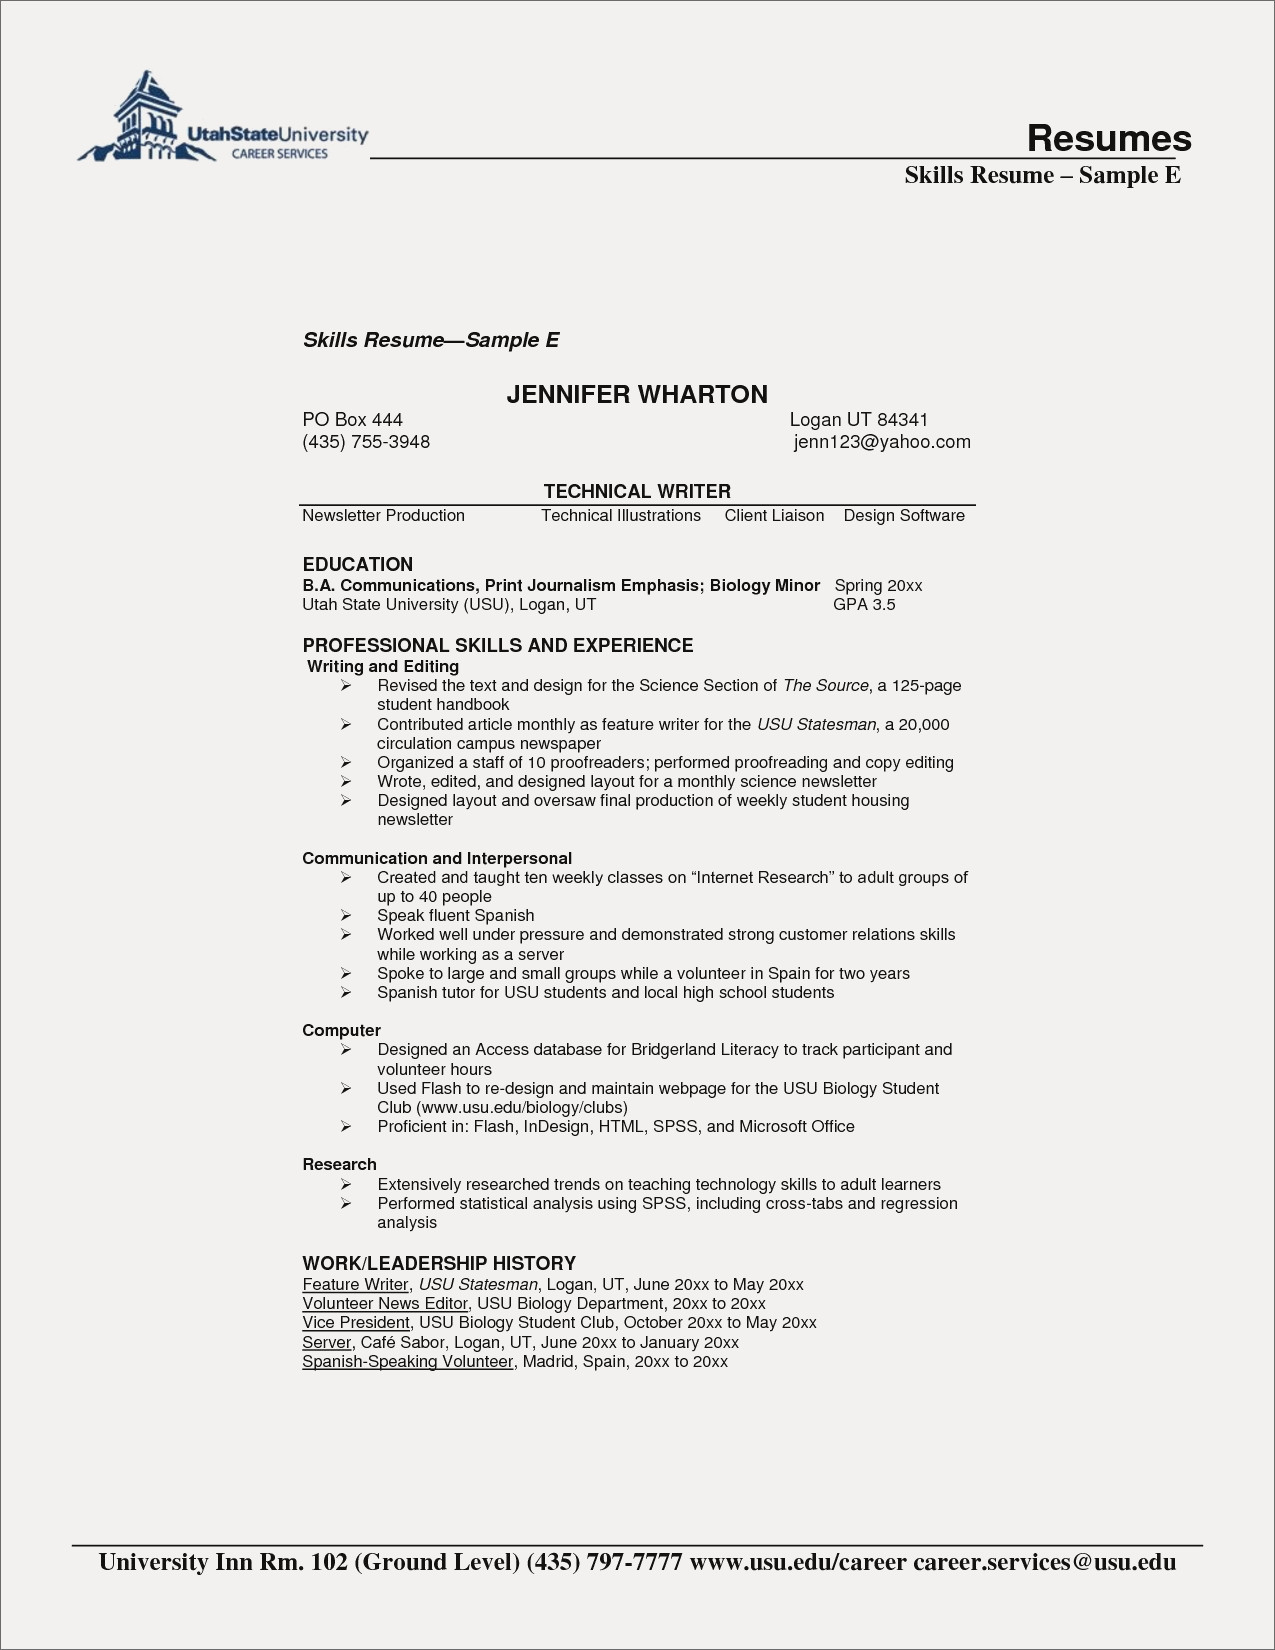 Personal Skill for Resume - Cheap Resumes Fresh Puter Skills Example Unique Examples Resumes